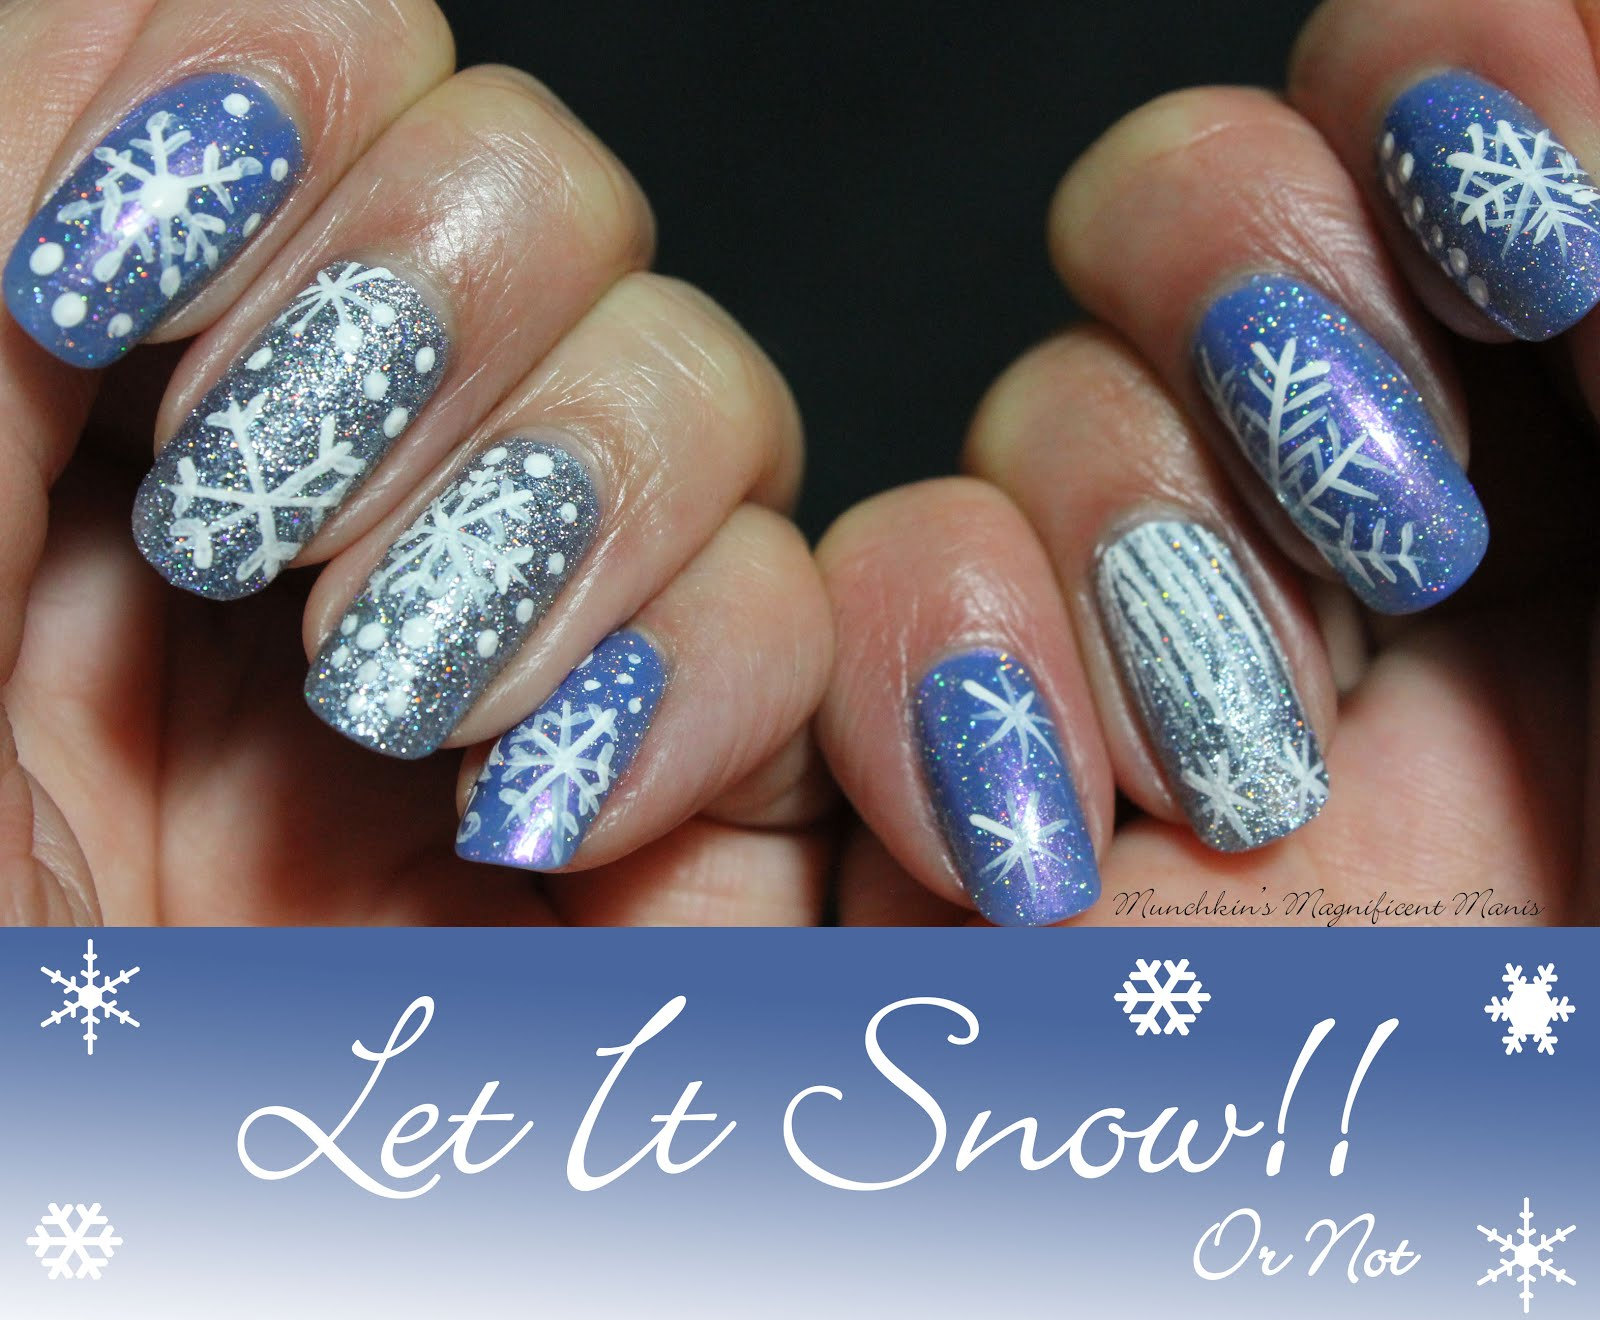 Munchkins Magnificent Manis Let It Snow Or Not Snowflake Winter